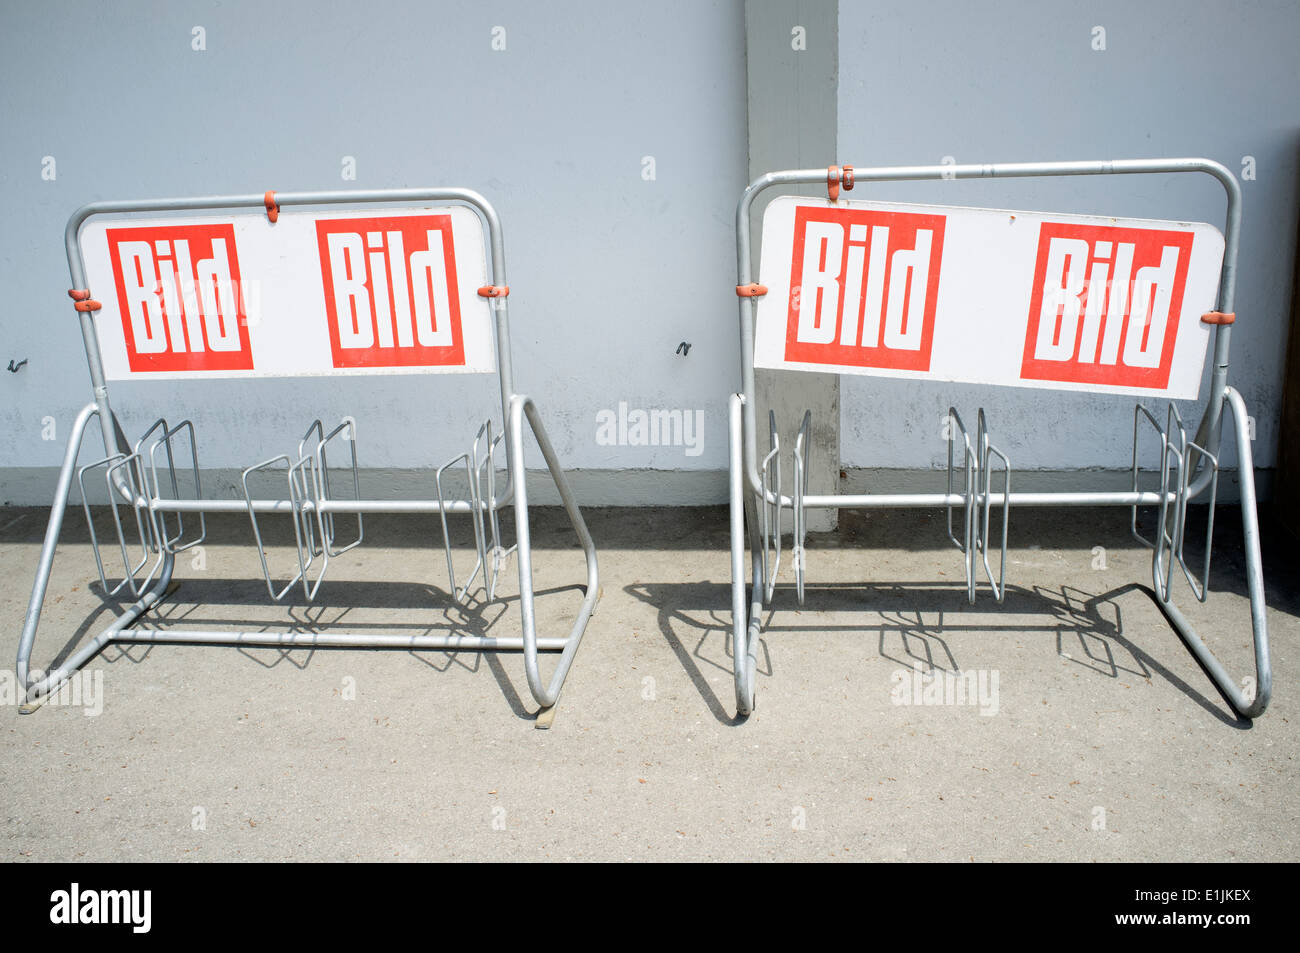 Cycle racks outside a newsagents sponsored by Bild newspaper, Waging am see, Bavaria, Germany. - Stock Image